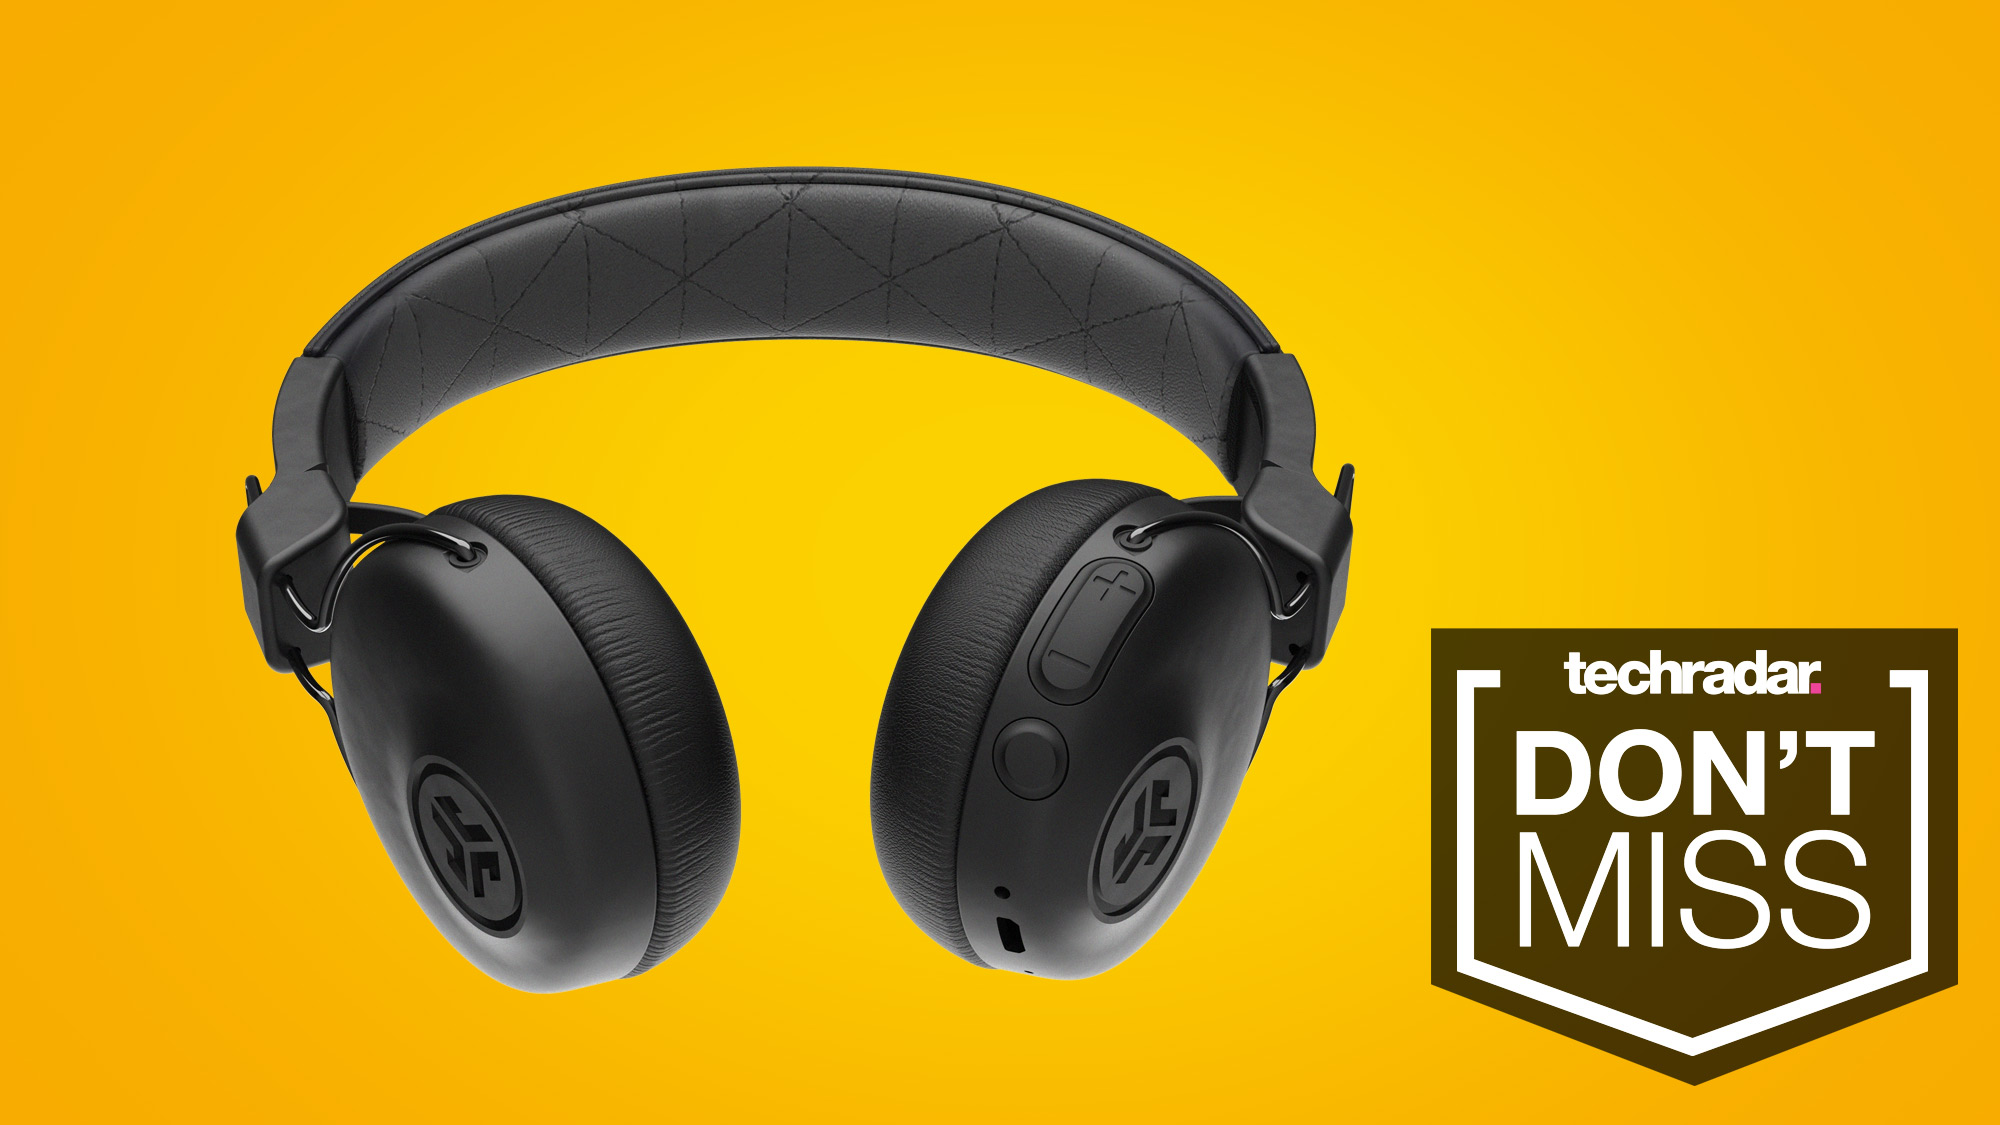 These wireless noise canceling headphones are just $30 in Walmart Black Friday deals thumbnail